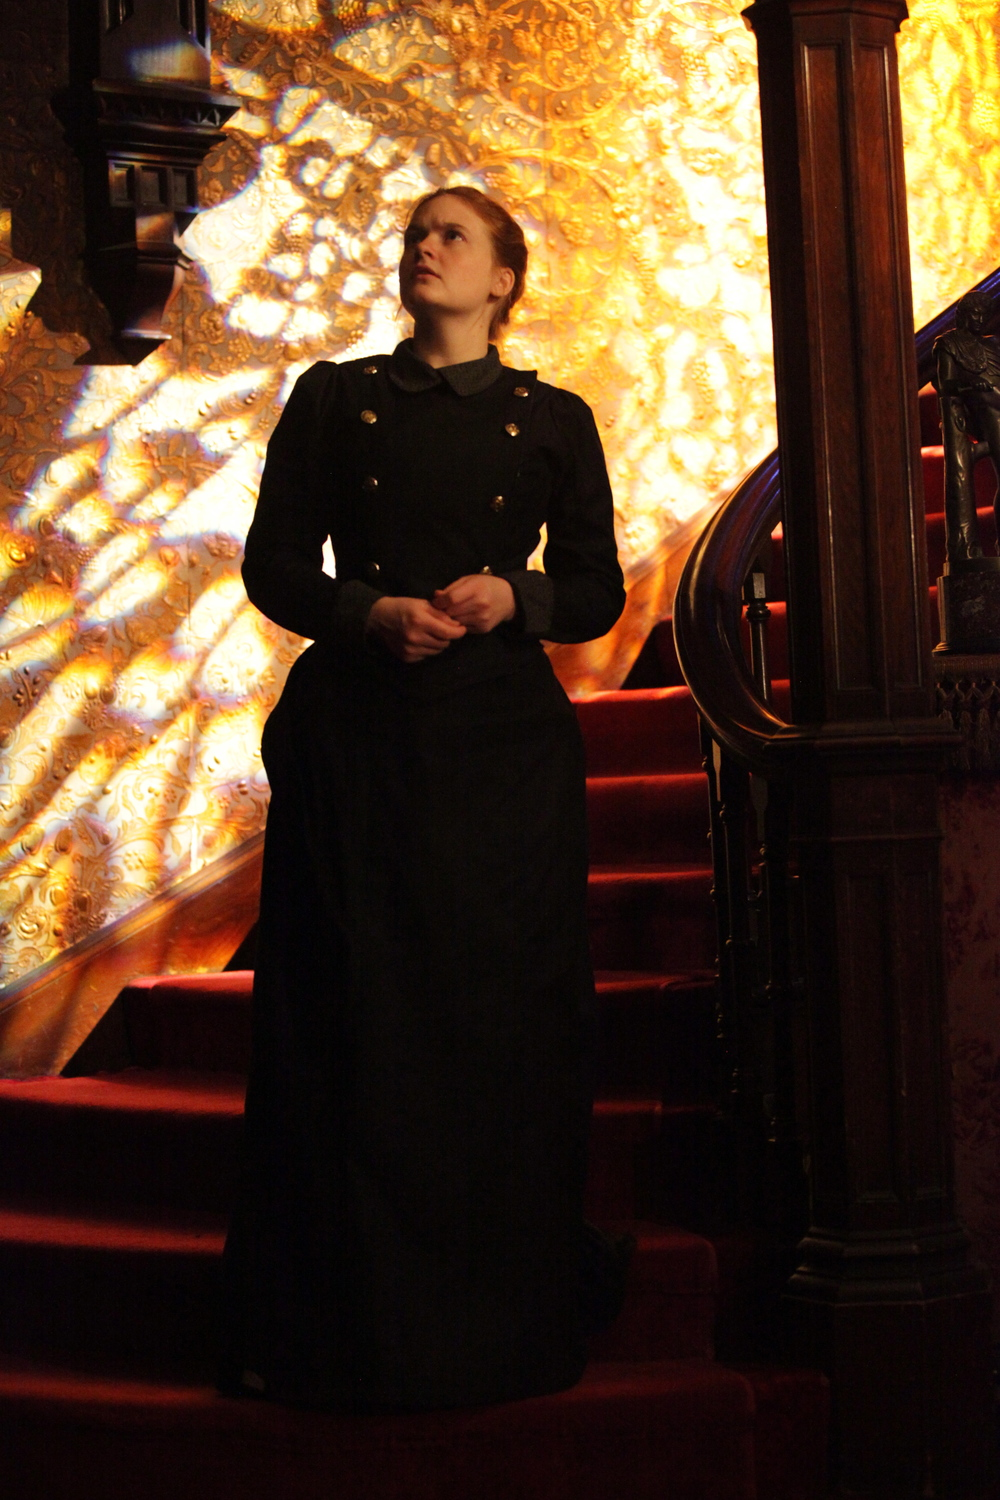 Anna Waldron in The Turn of the Screw at the Gibson House Museum. Photo by Kyler Taustin.